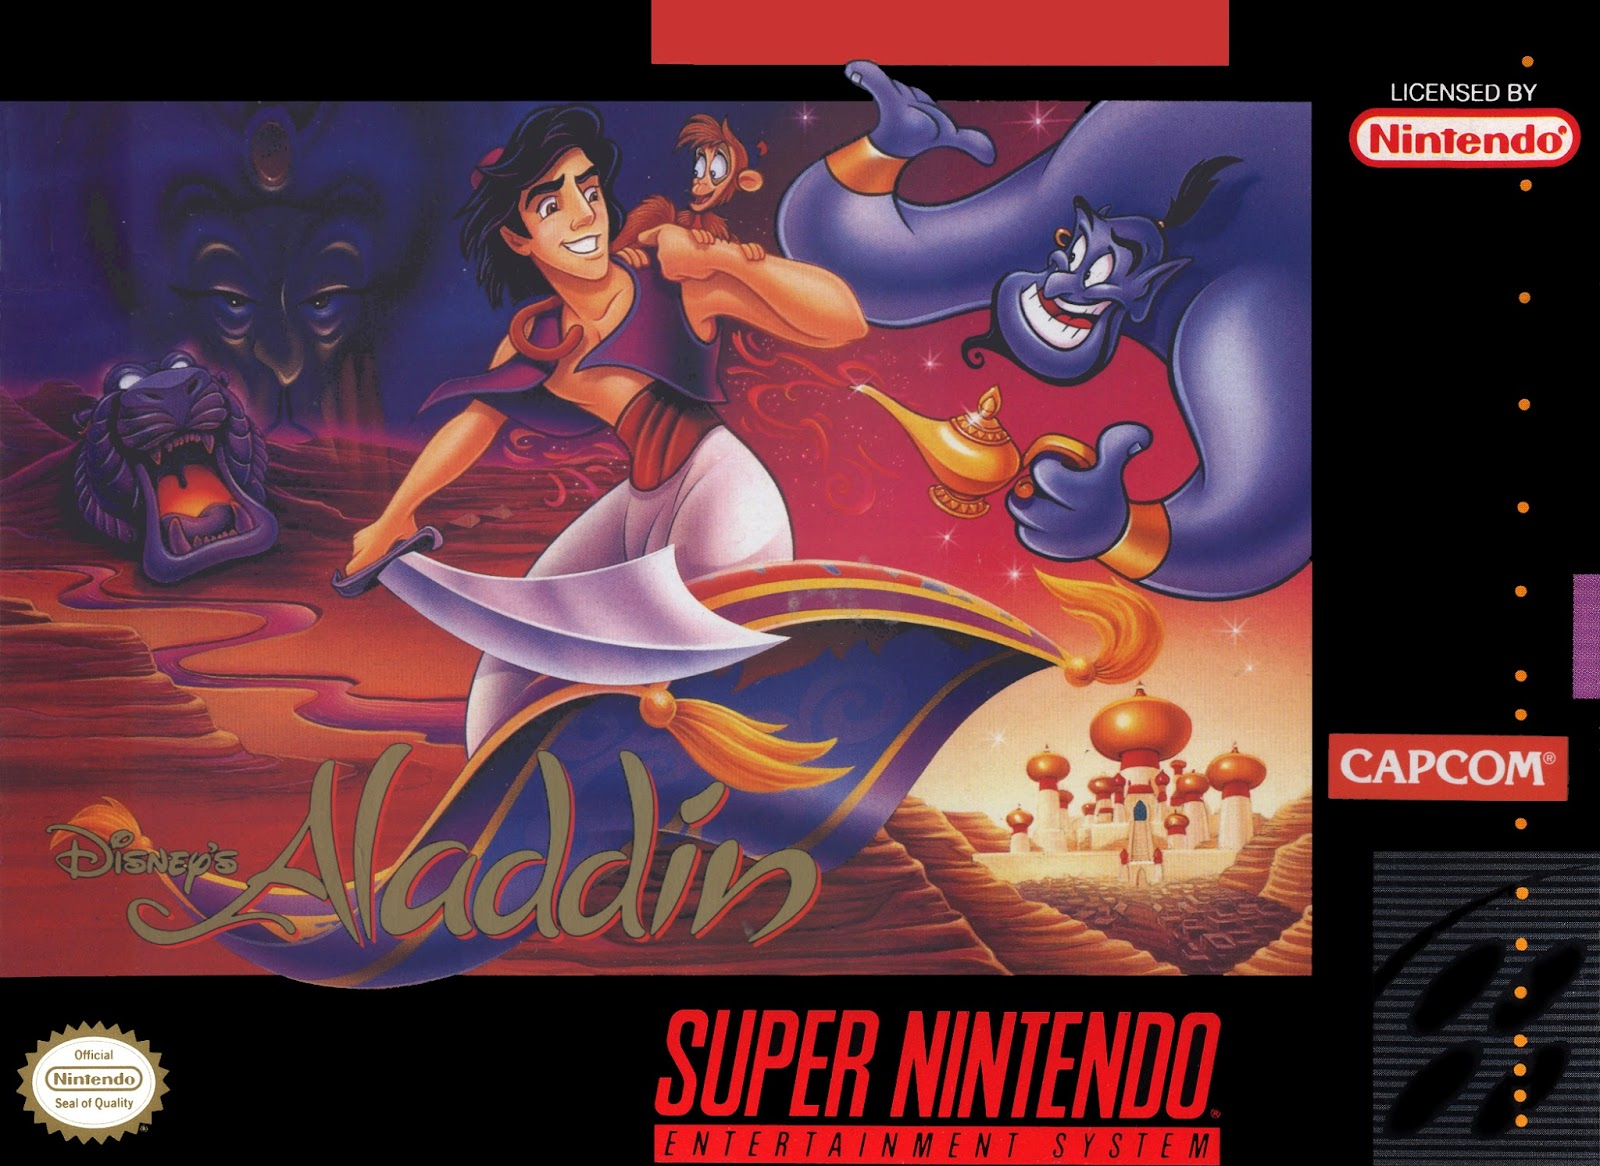 nerdicus snes review 34 disney 39 s aladdin life of a gamer nerd. Black Bedroom Furniture Sets. Home Design Ideas